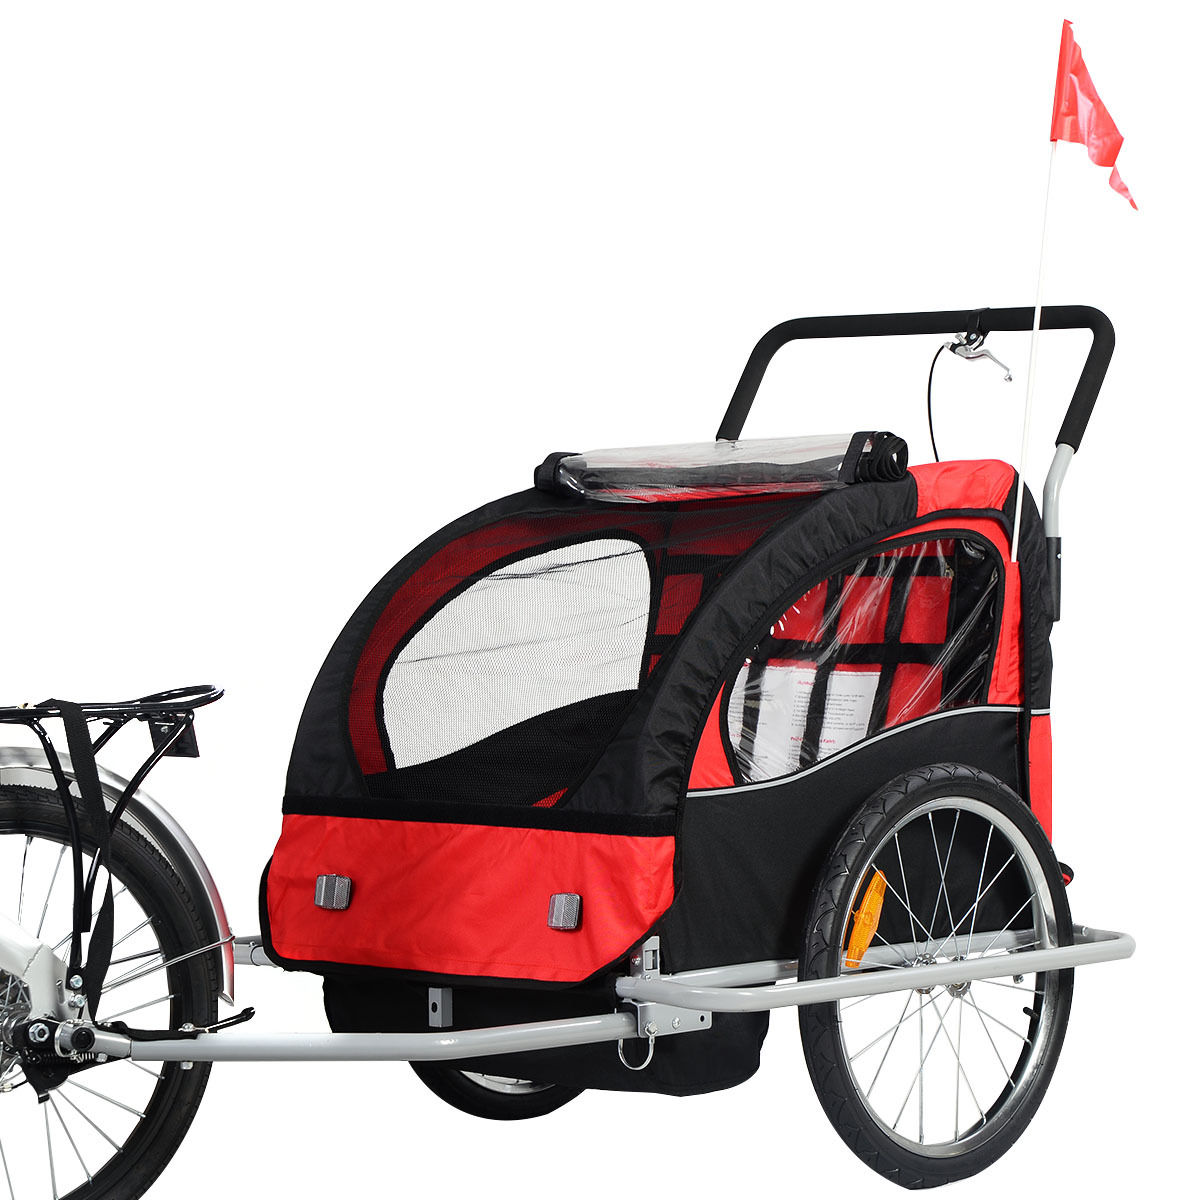 New 2 in 1 Bicycle Carrier Double Infant Child Baby Bike Trailer Jogger Stroller